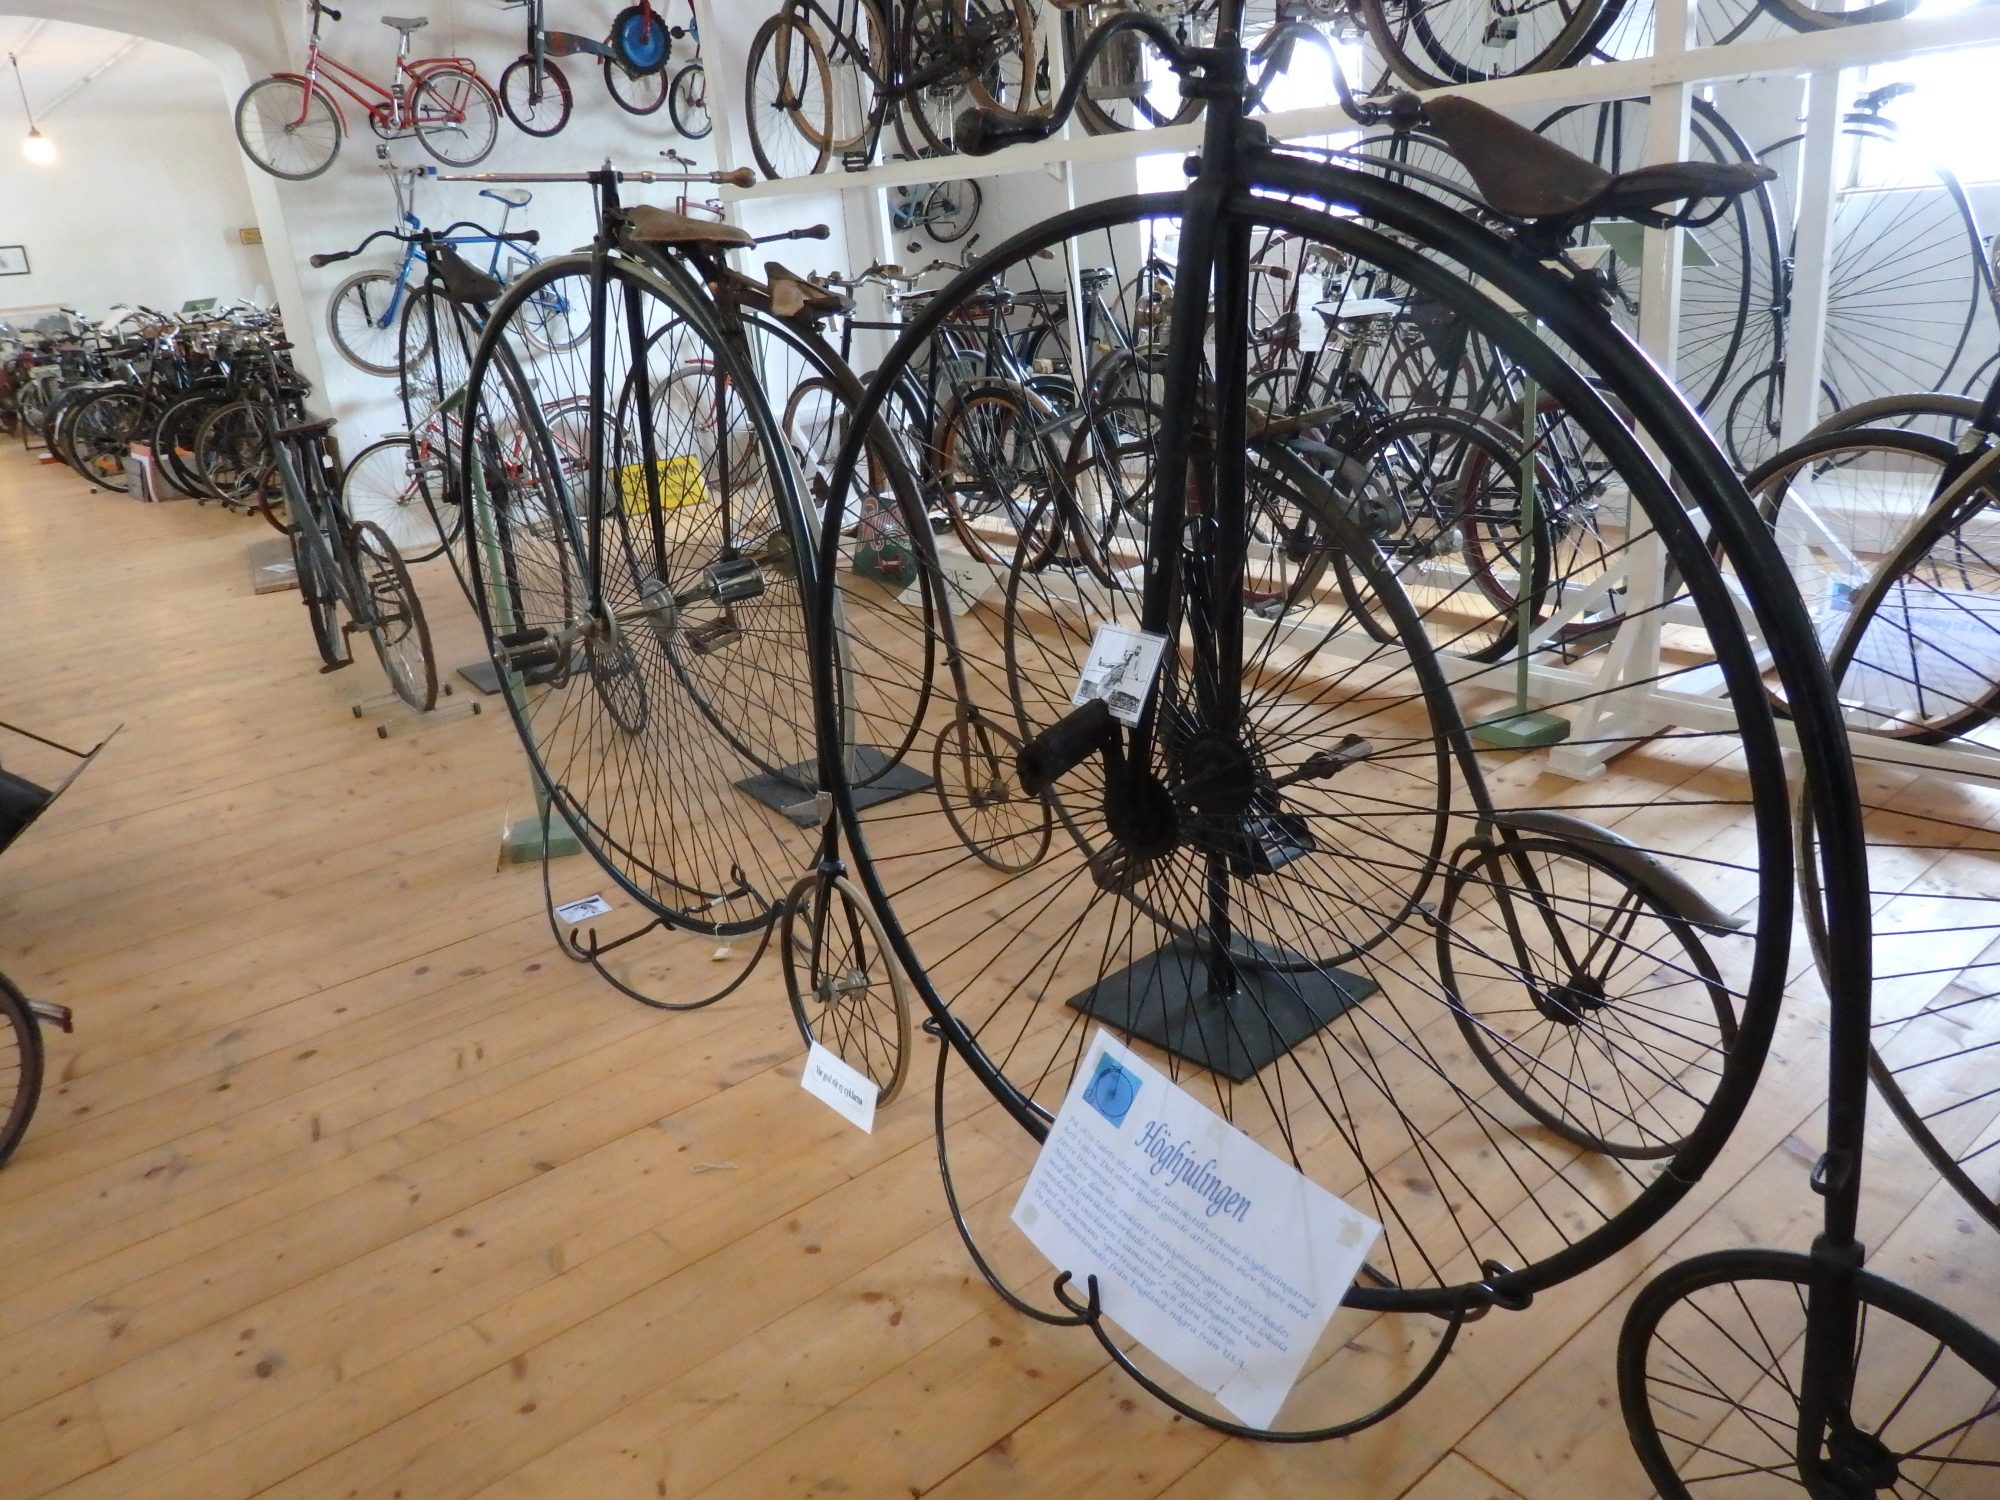 a part of the bicycle collection at Sparreholms manor, Sormland, Sweden